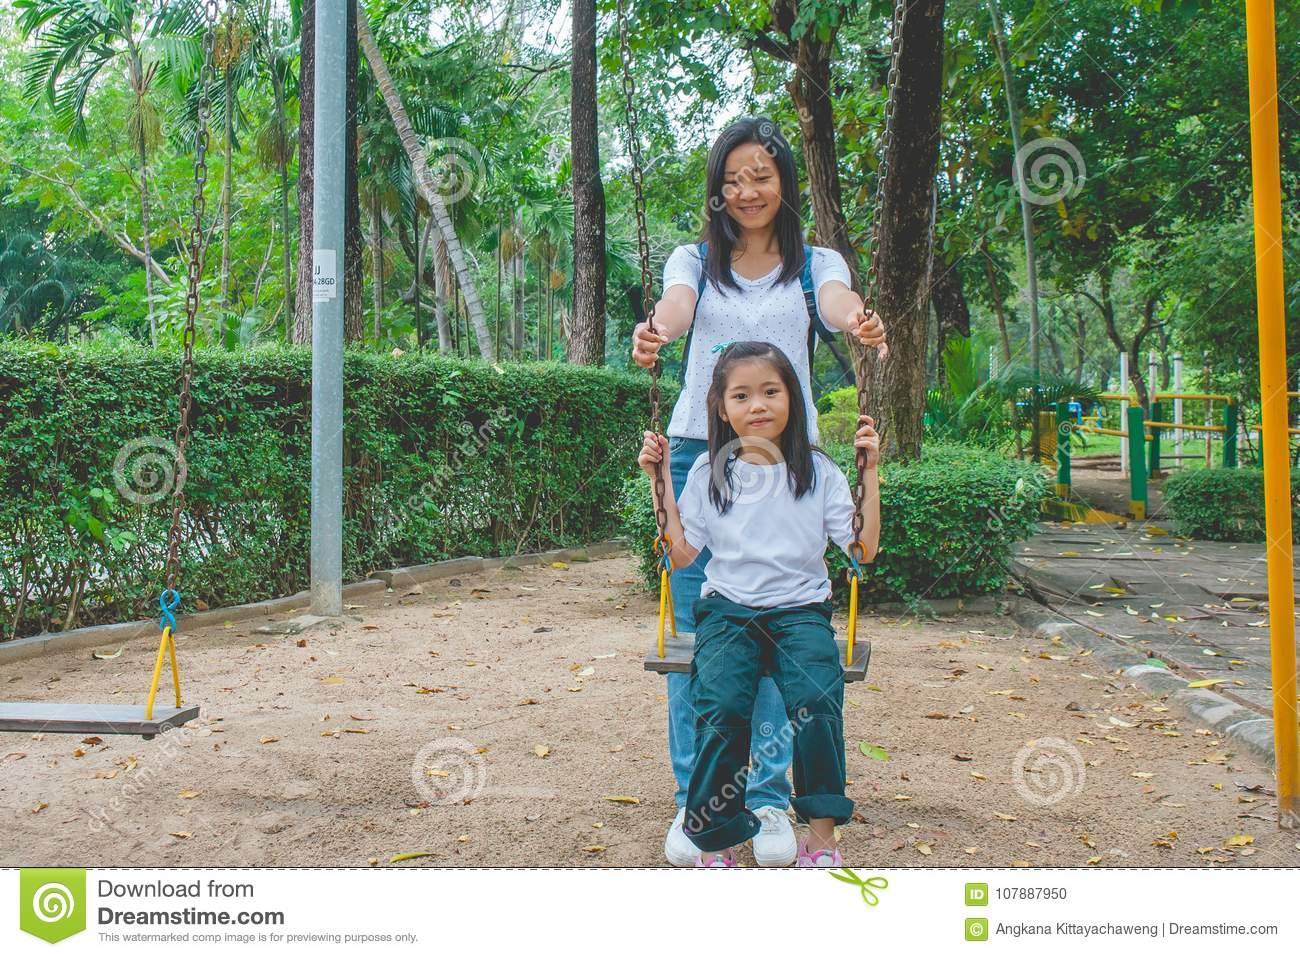 Adorable and Holiday Concept : Woman and child feeling funny and happiness on a swing at playground.